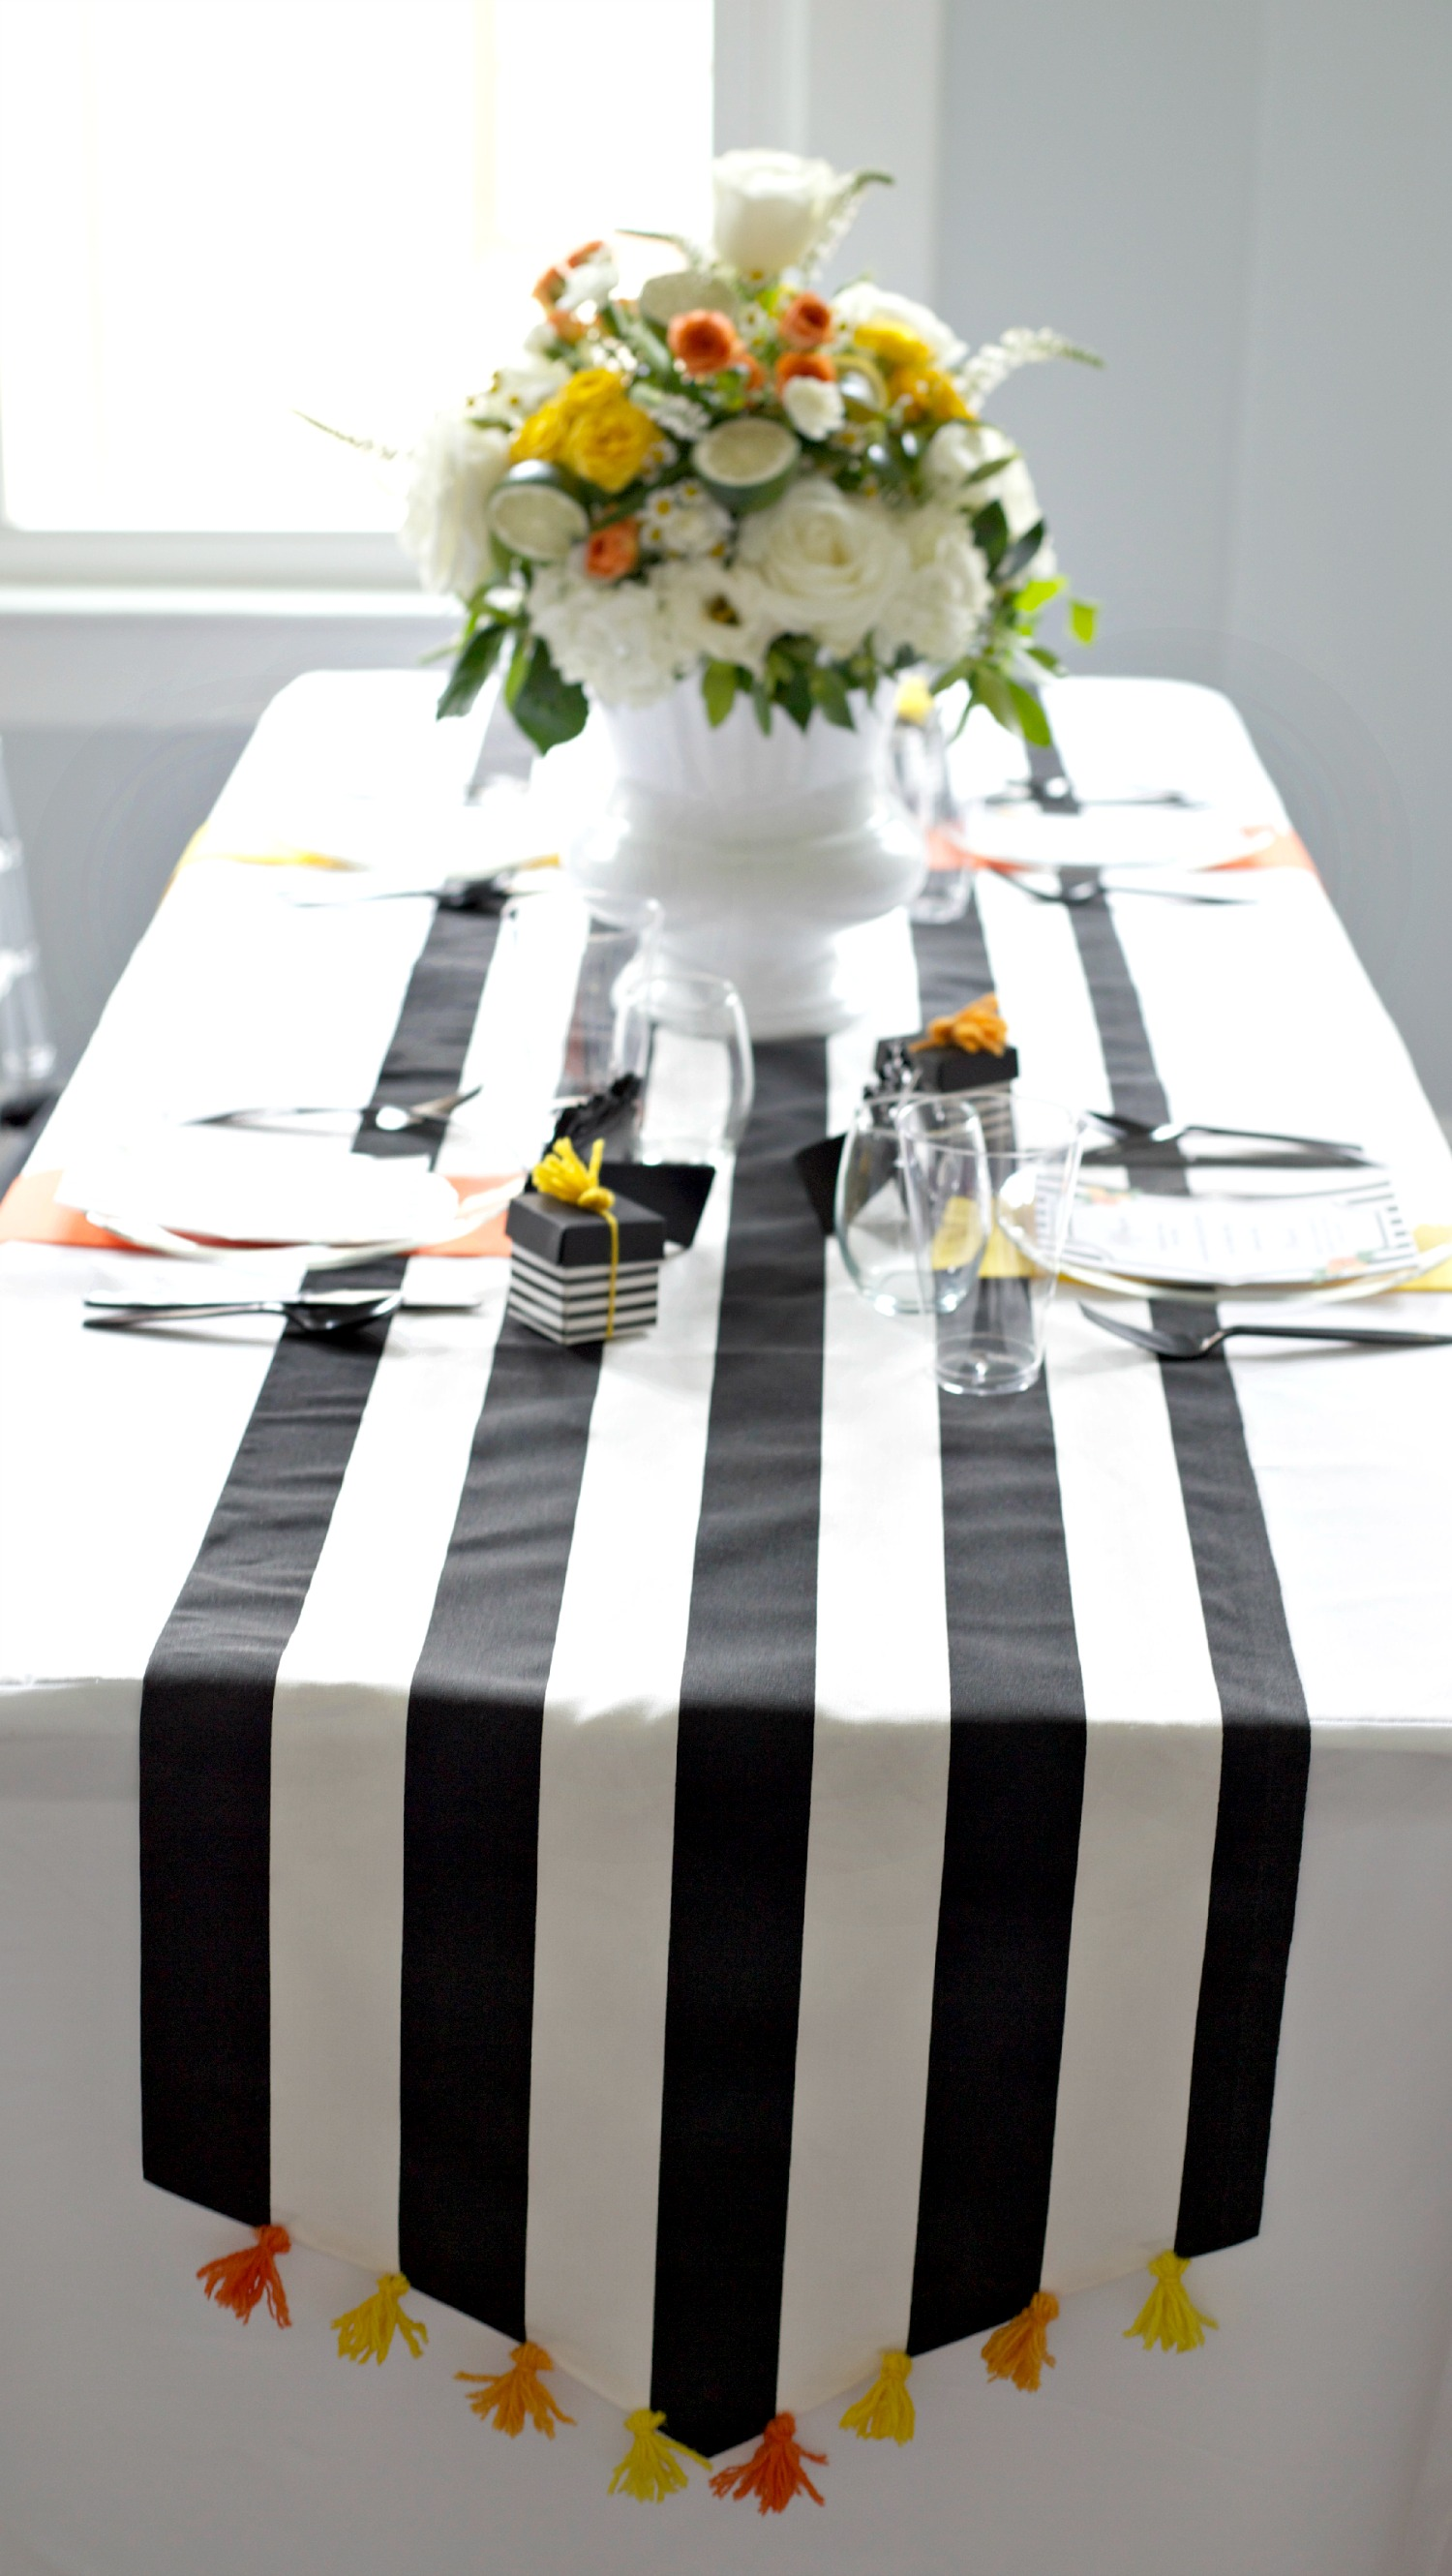 DIY Tassels | Video Tutorial | DIY Table Runner | Black, White, Orange, Yellow